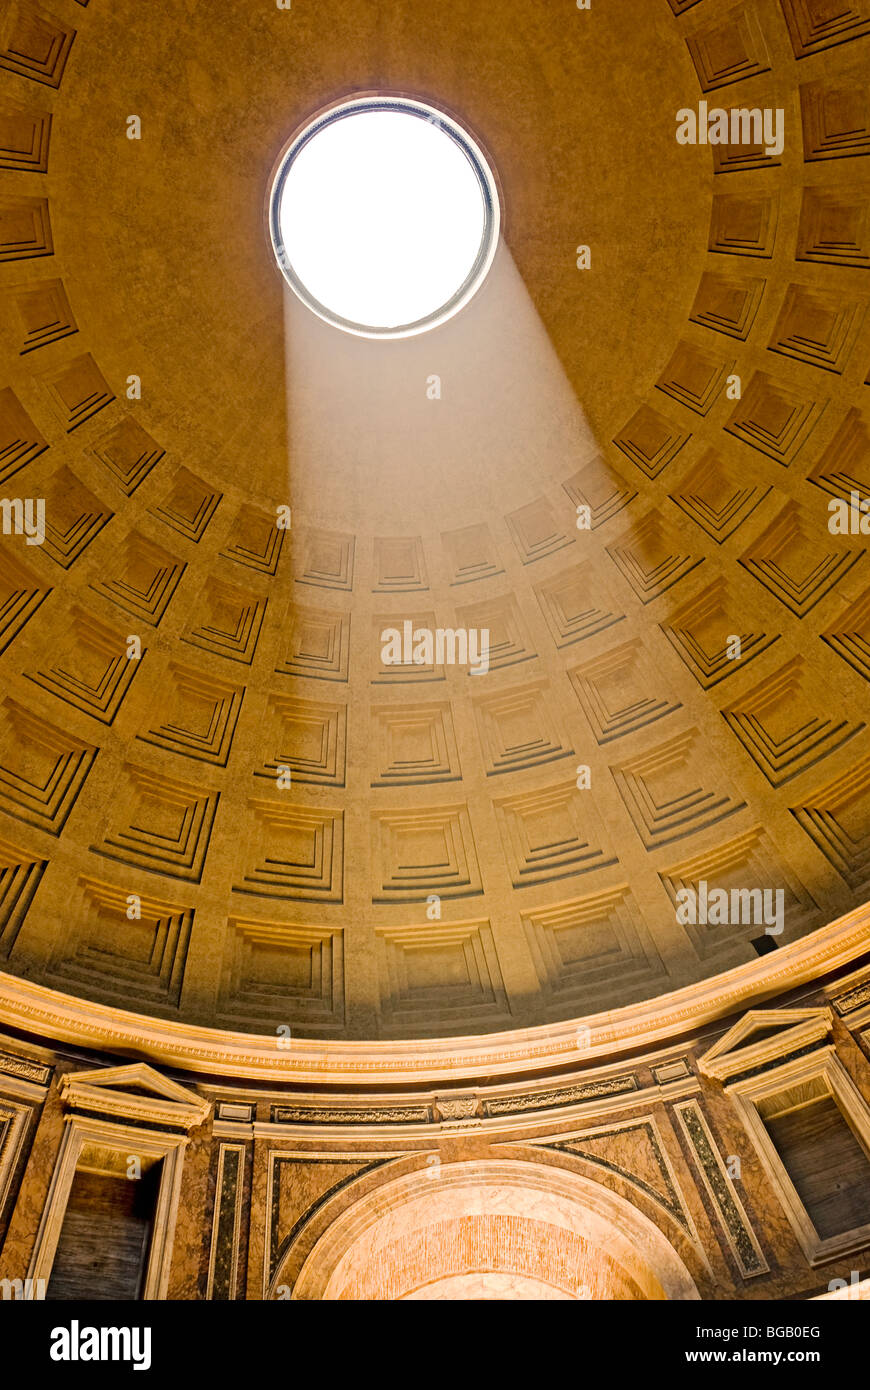 Rome, Italy. Interior of the Pantheon at the Piazza della Rotonda the Oculus and the coffered ceiling. - Stock Image